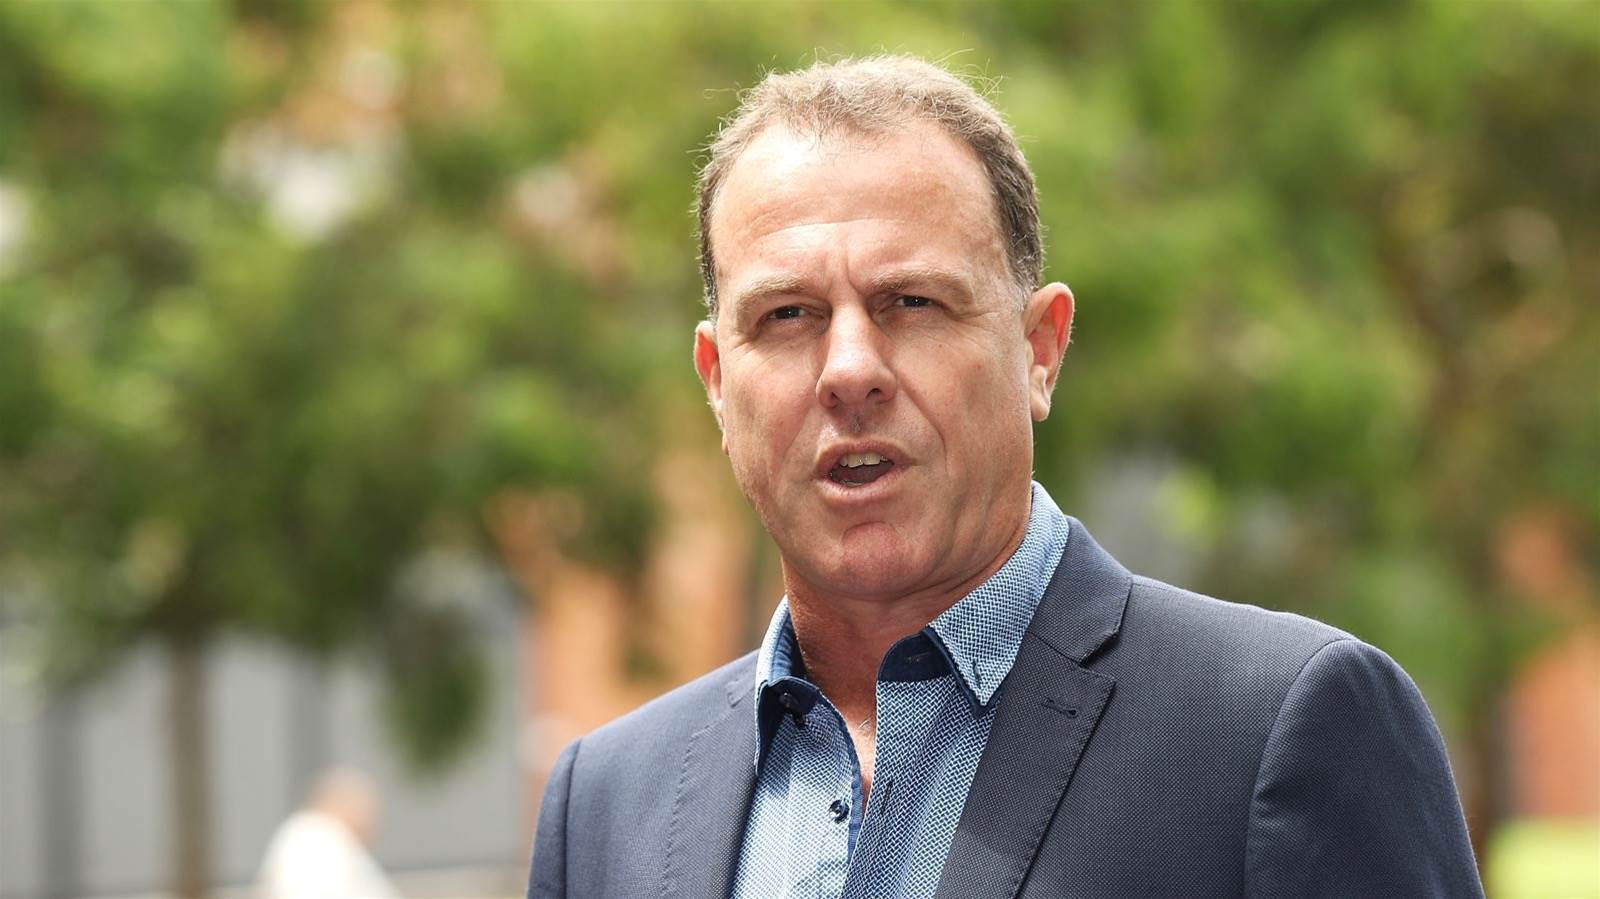 Stajcic: Stay down and give up, or get up and fight